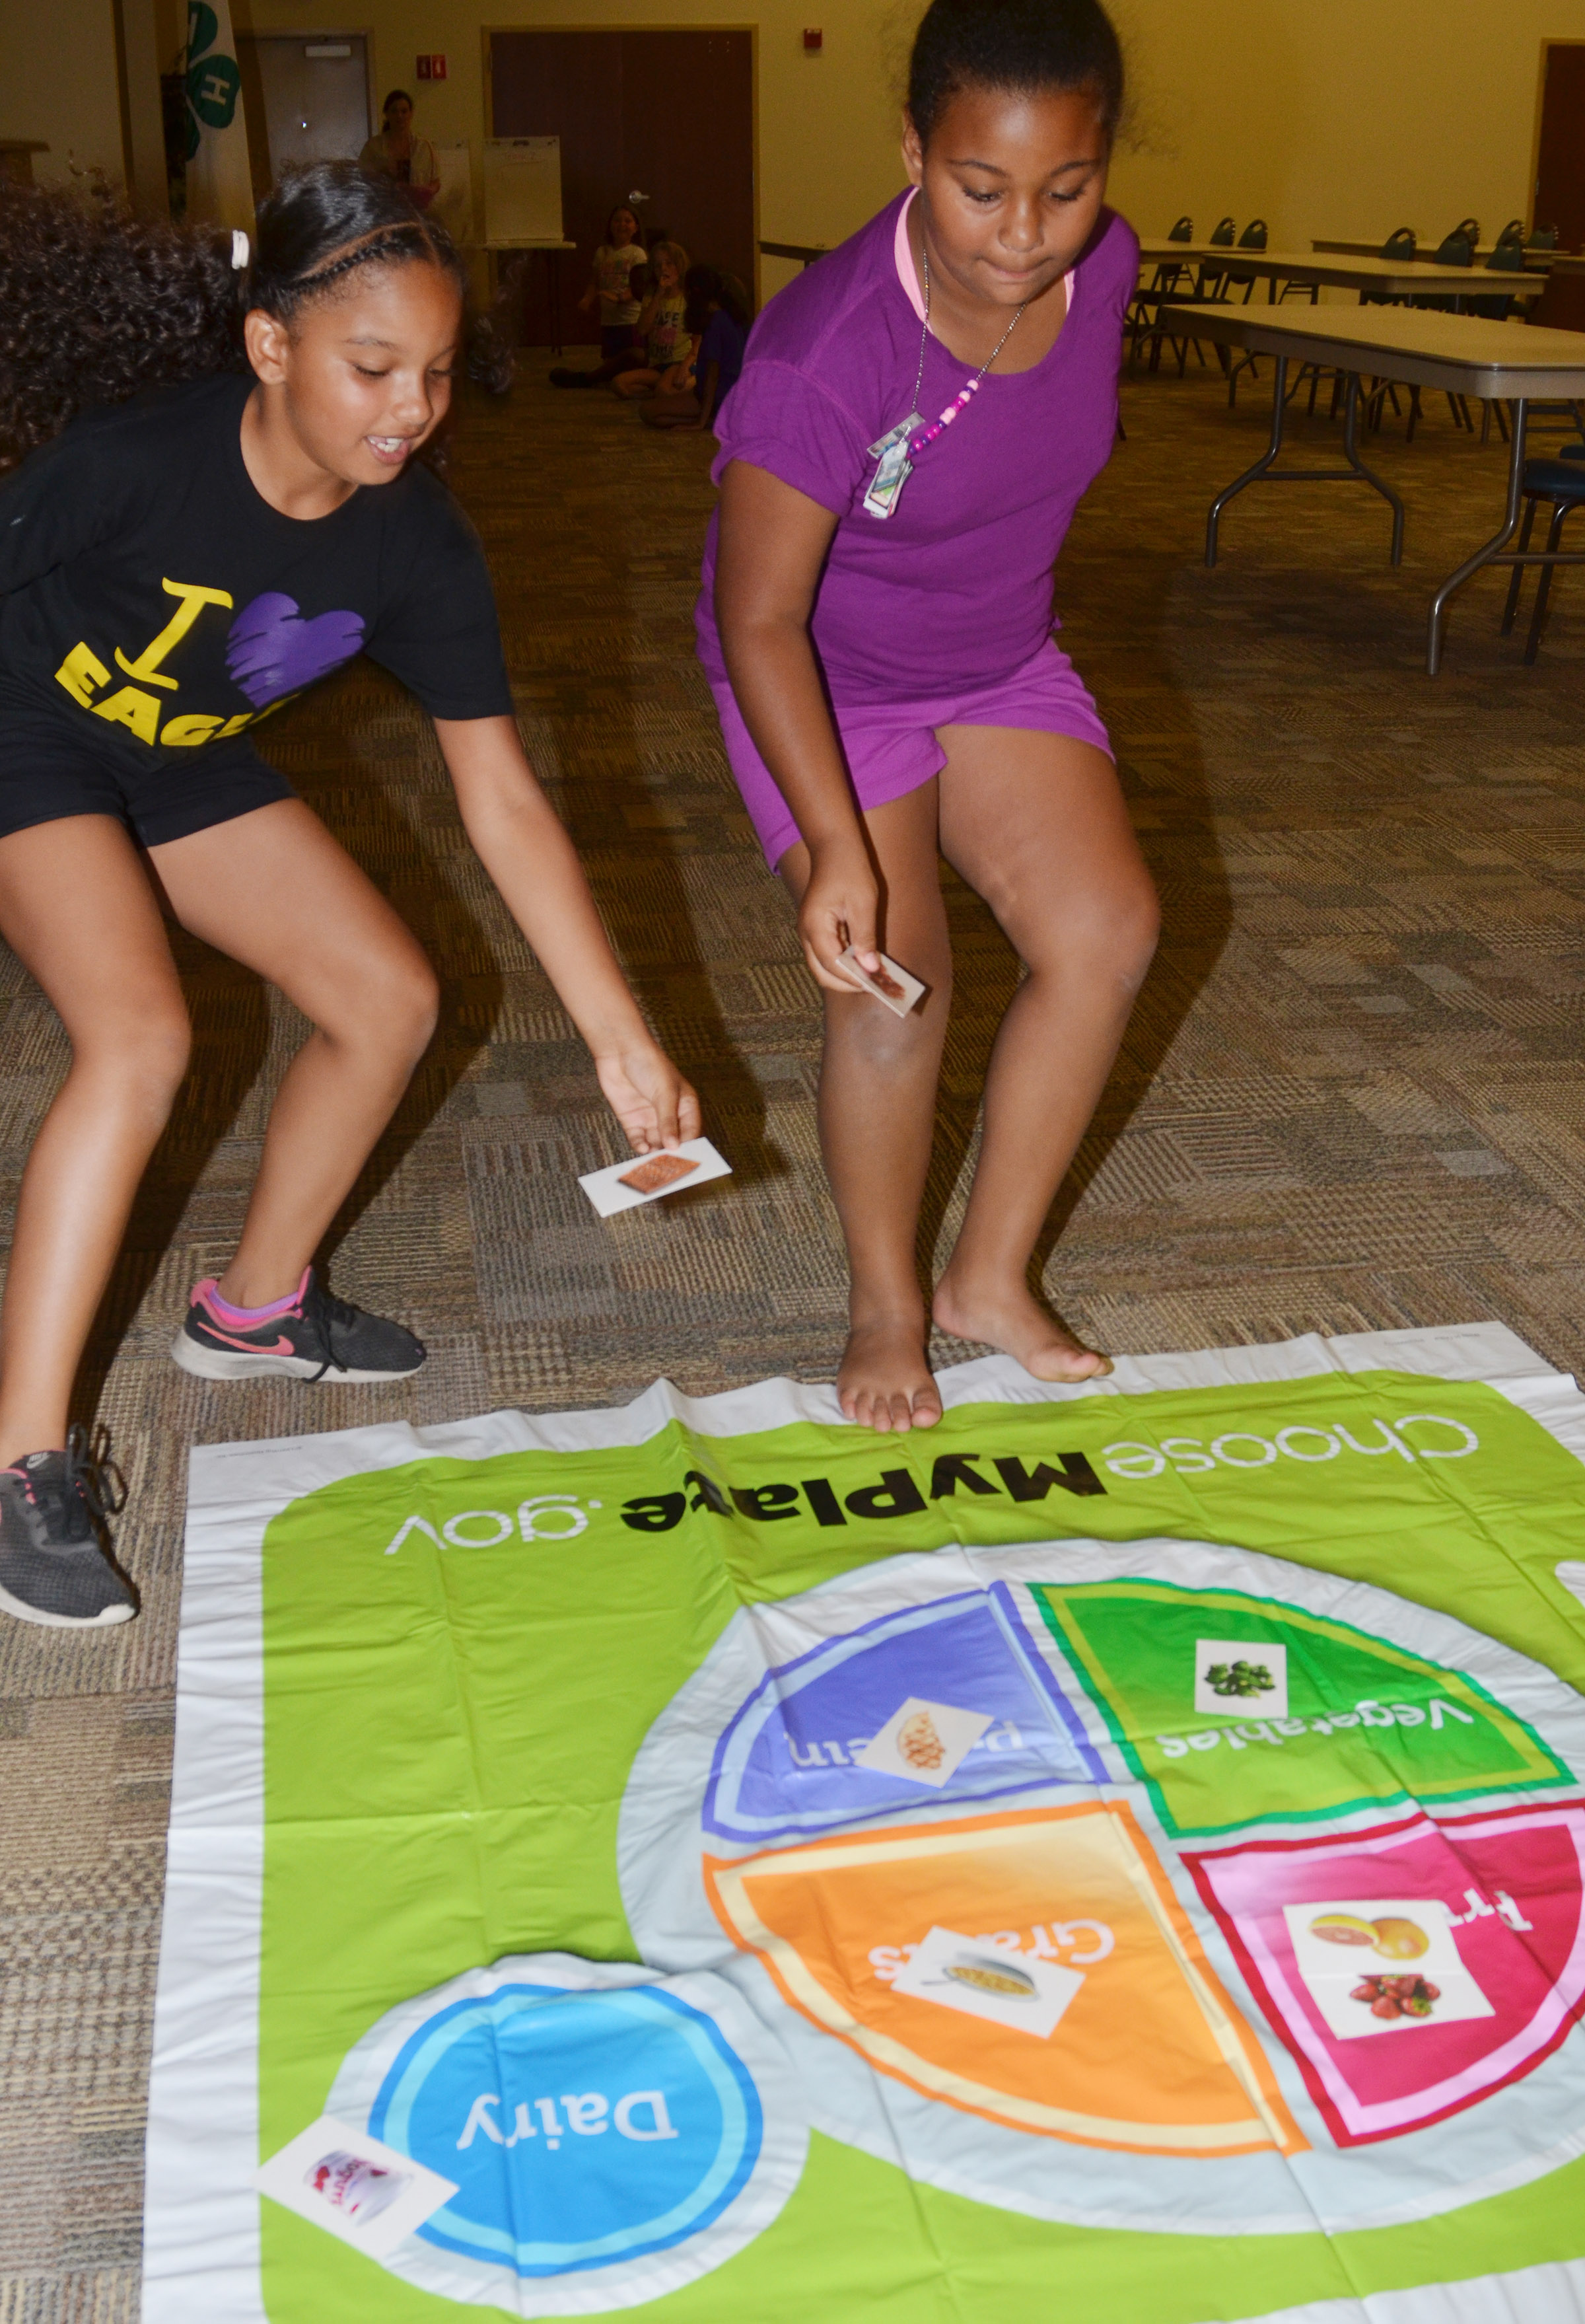 CES third-graders Aleecia Knezevic, at left, and Narissa Barnett race to place their foods in the correct food group.